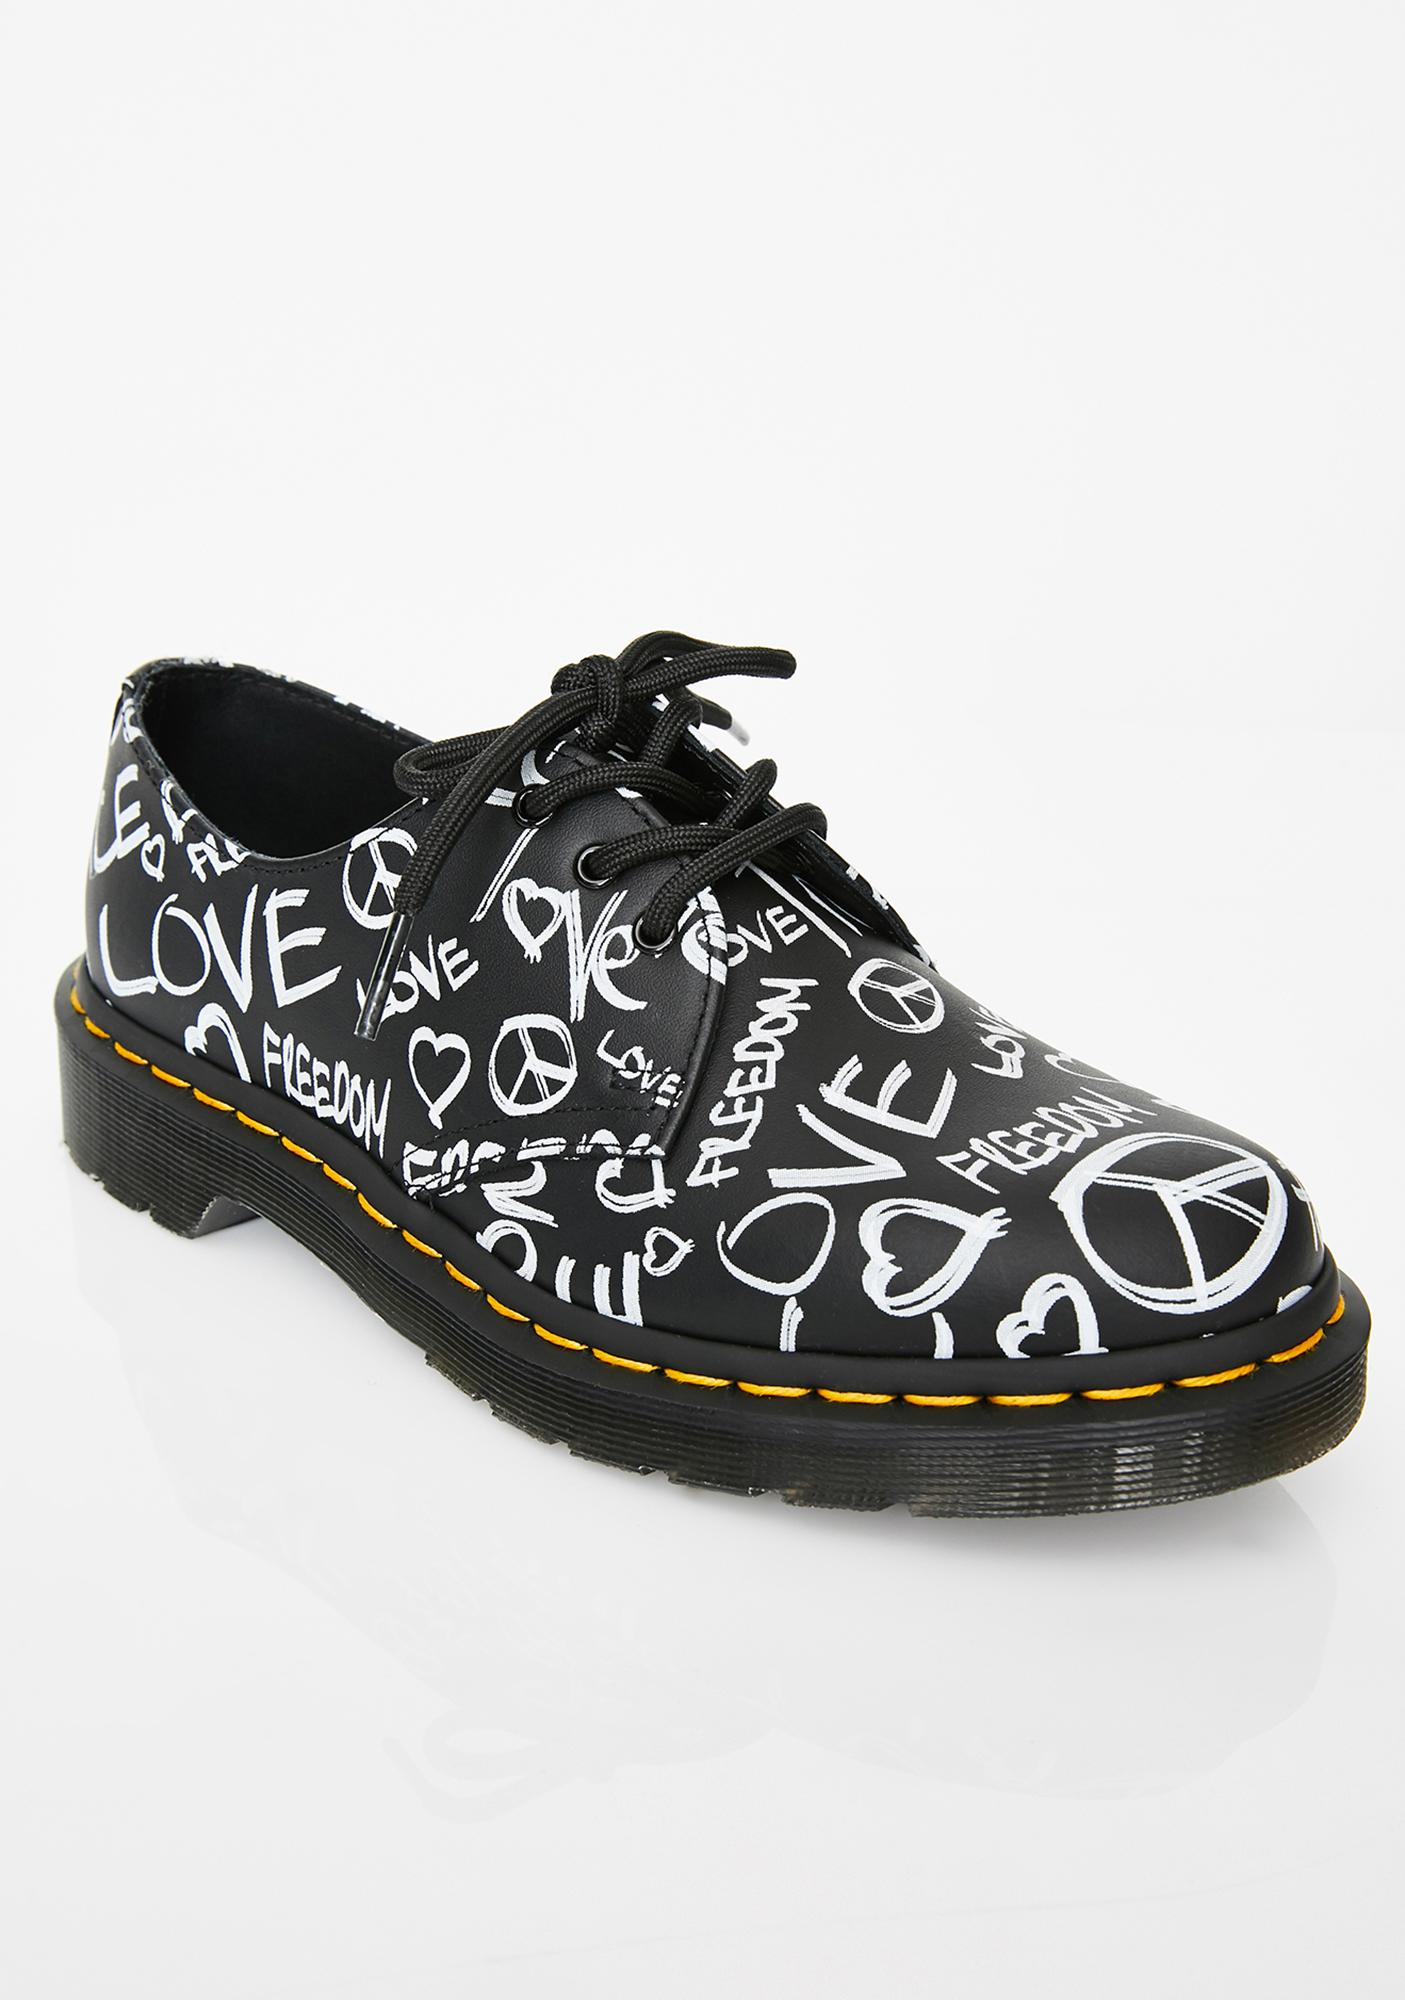 Dr. Martens 1461 Backhand Oxfords